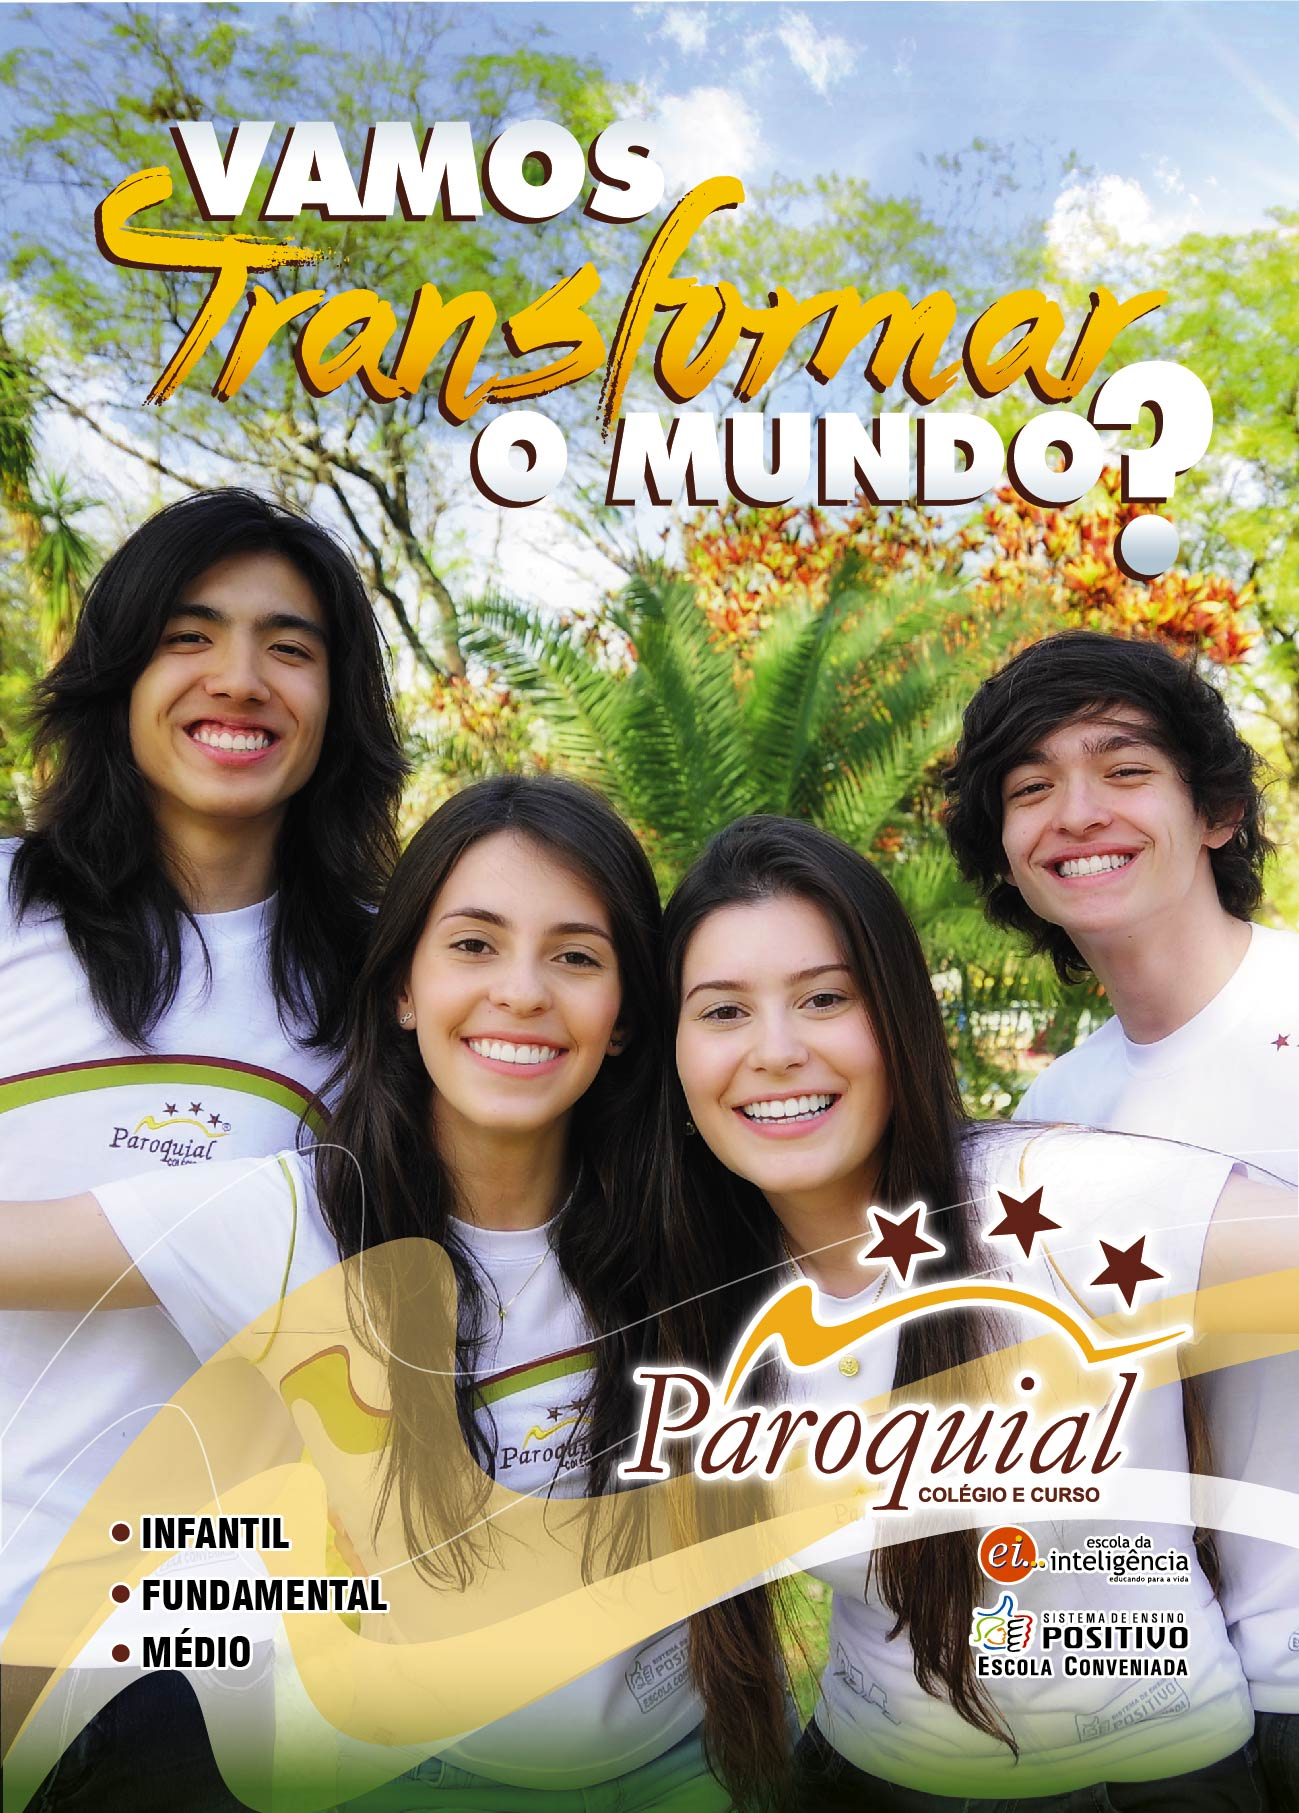 folder_paroquial_2018_vs2-01